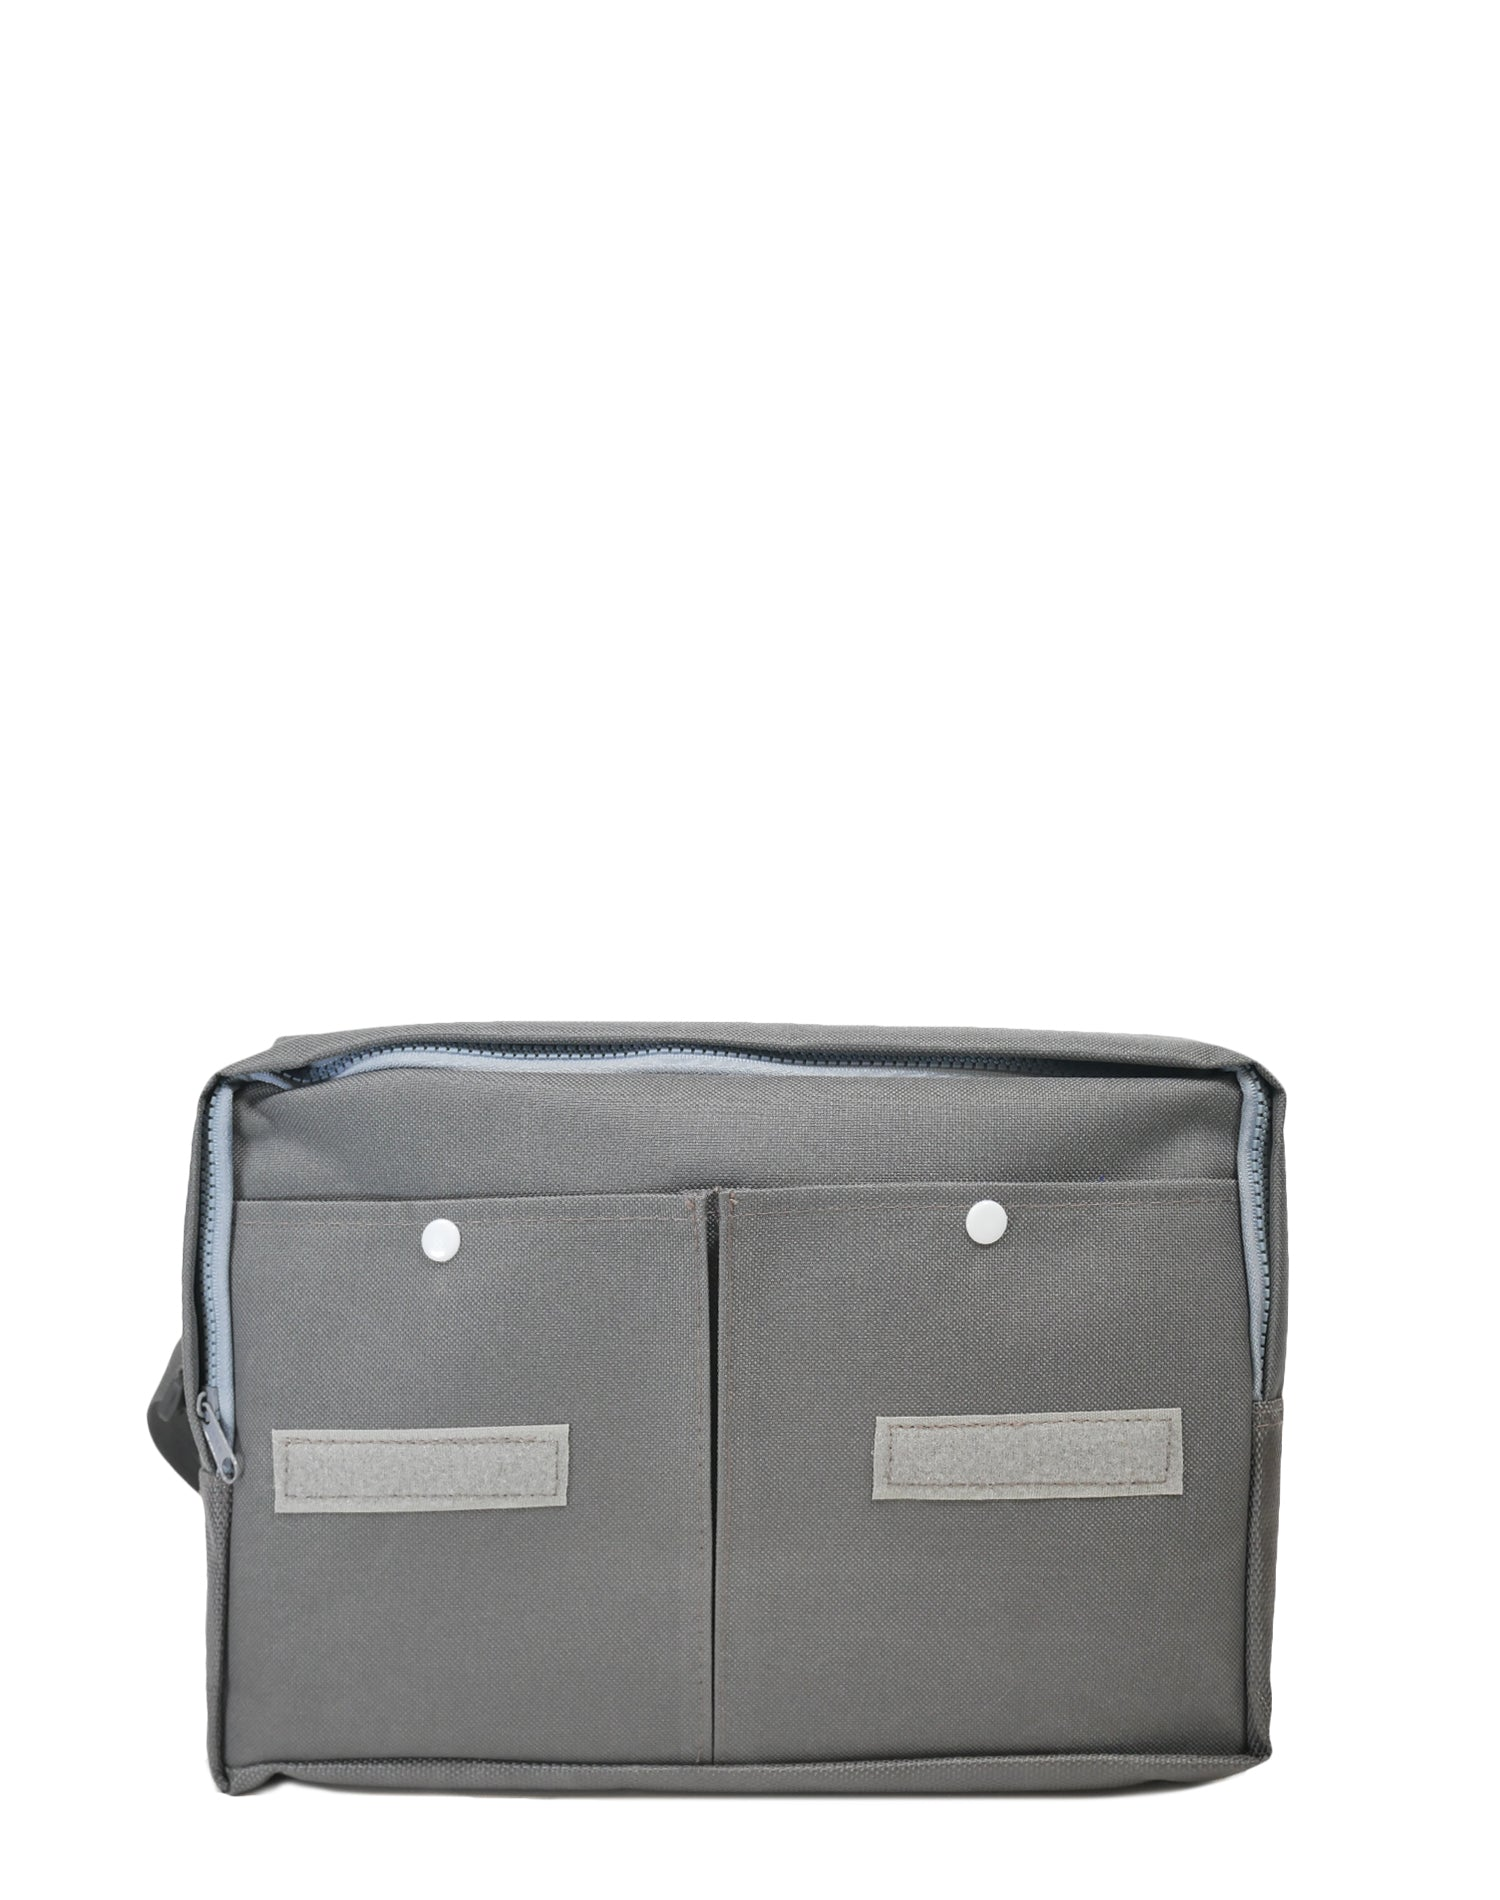 Grey Canvas Shoulder Bag.灰色帆布斜揹袋